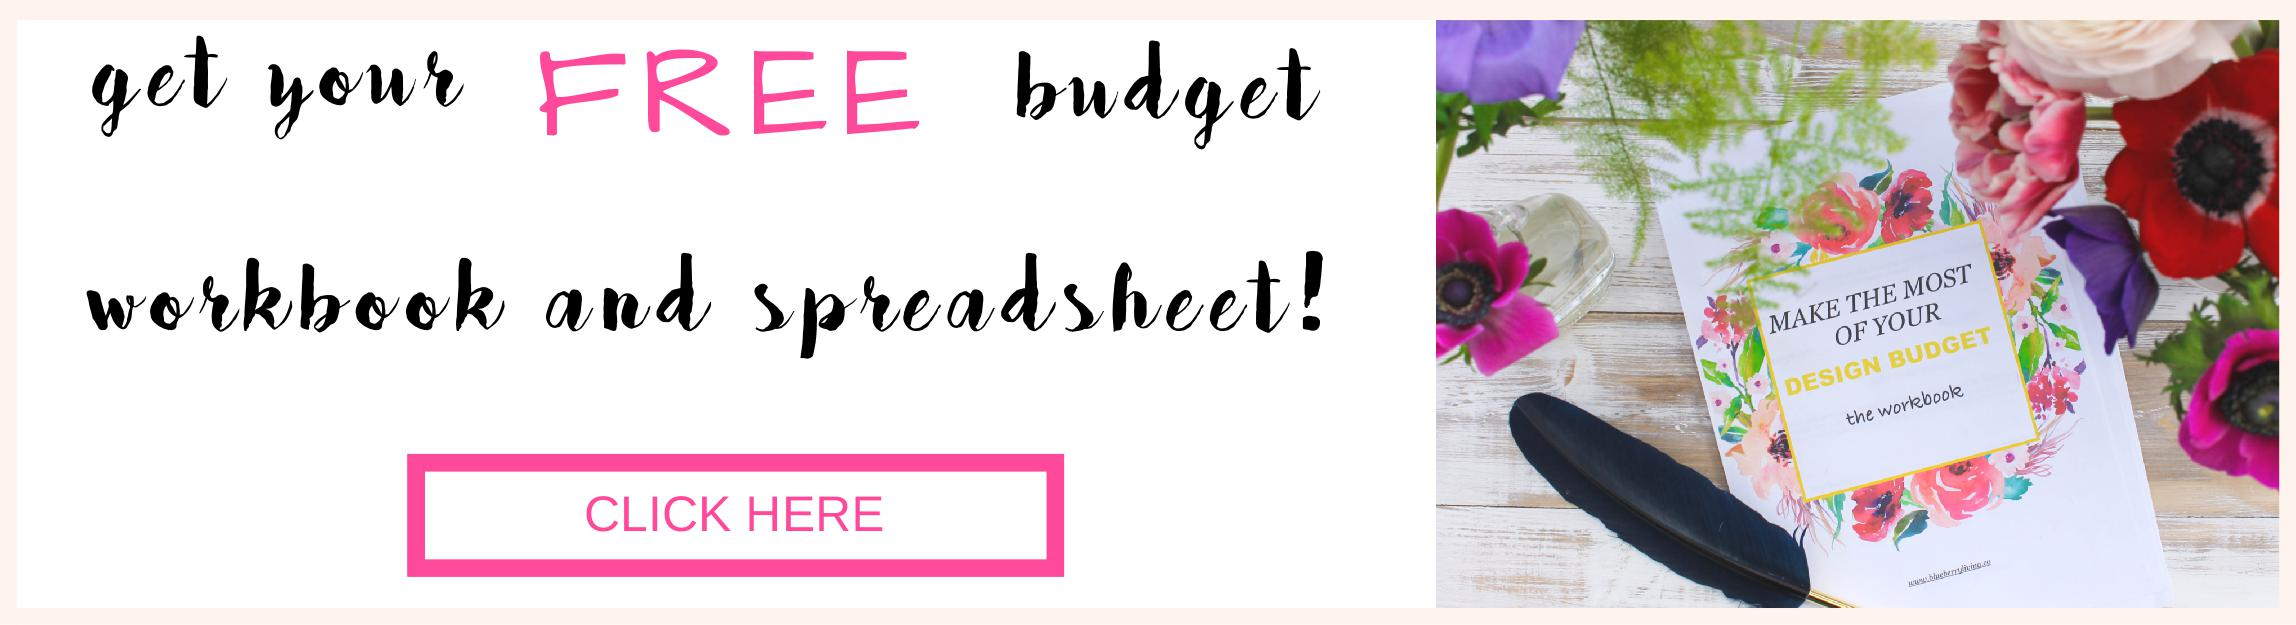 Make the most of your budget FREE worksheet.